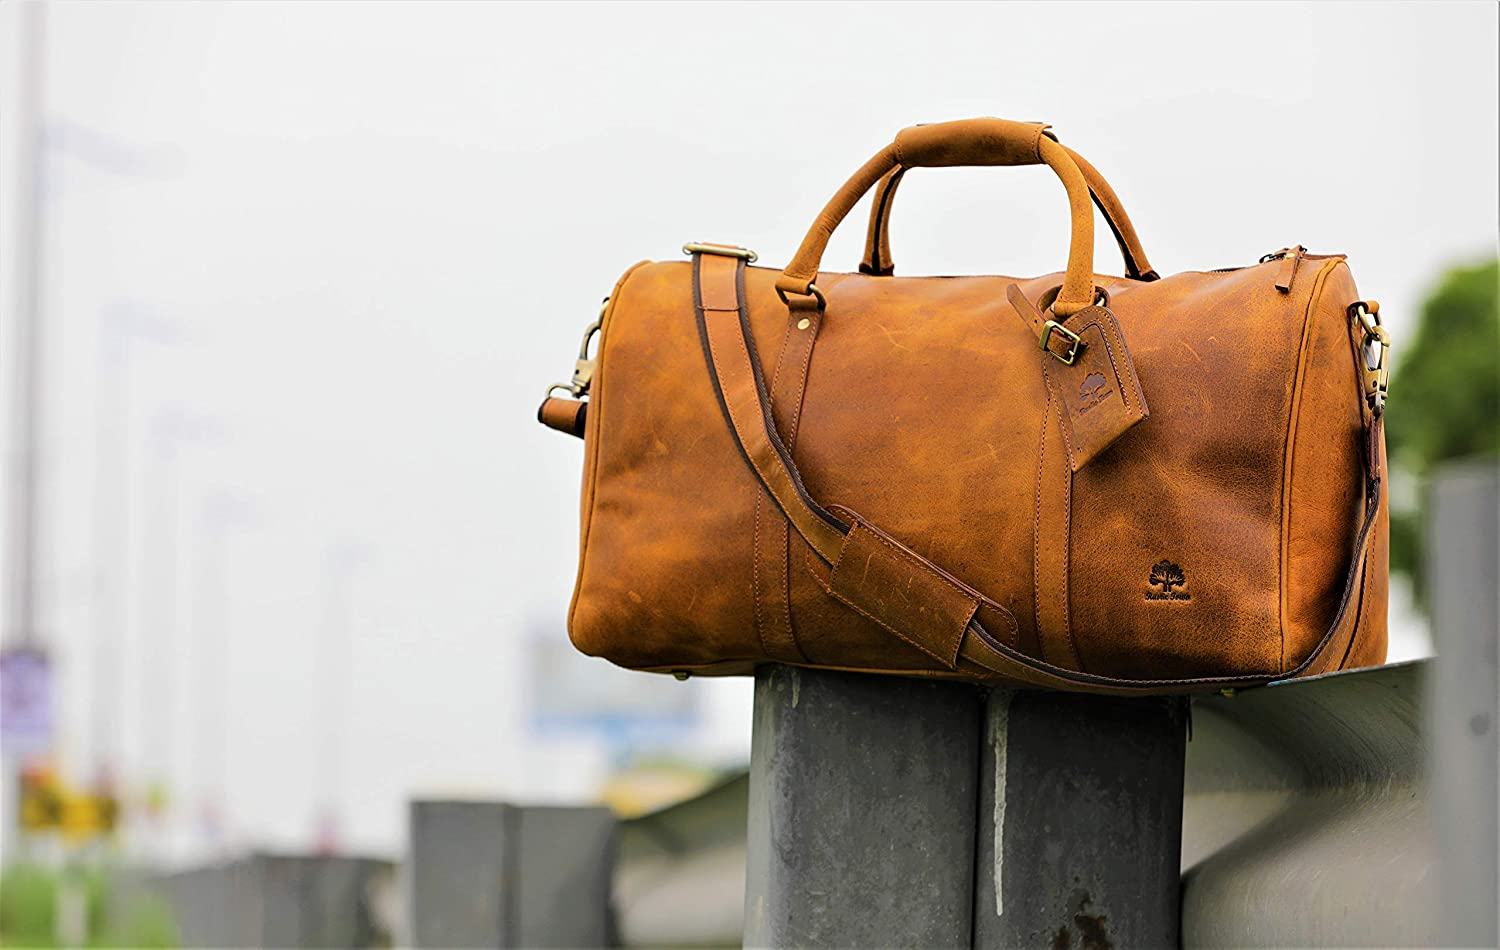 Leather Duffel Bags For Men - Airplane Underseat Carry On Luggage By RusticTown  RusticTown Inc DF17ADN 21a0ce1a9384f